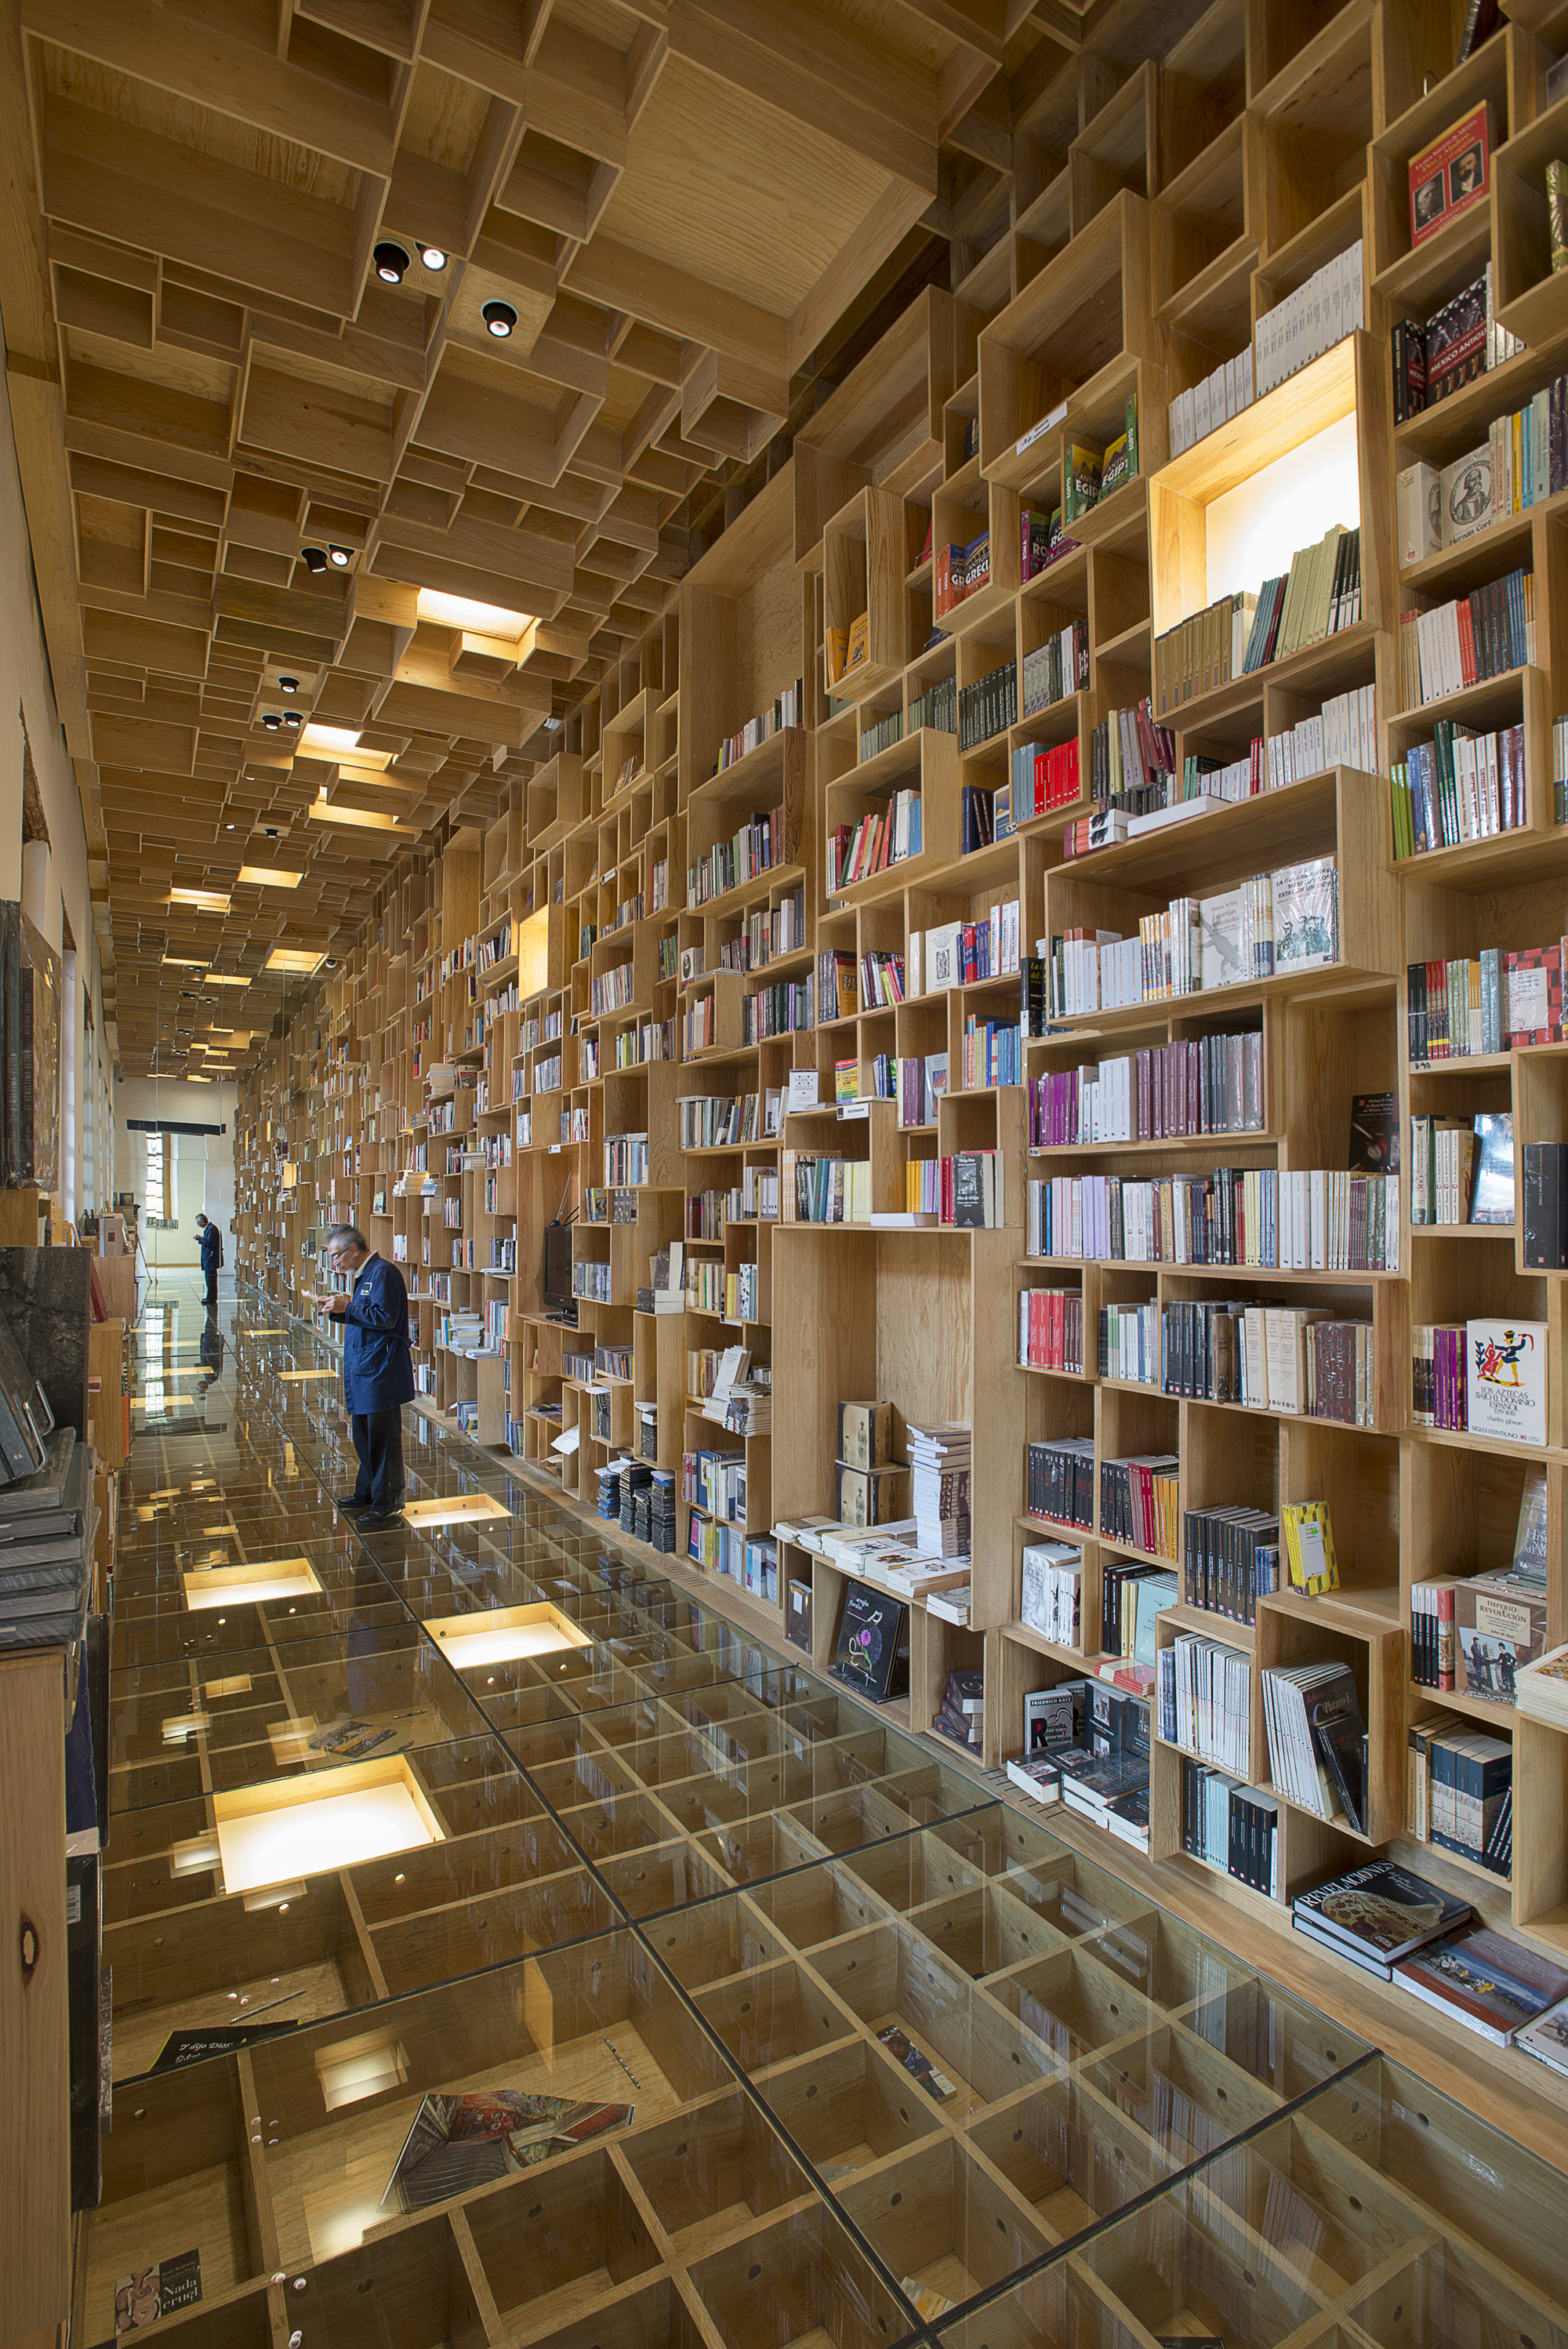 52e83b6ae8e44ea663000024_-the-city-of-the-books-and-the-images-taller-6a_dsc_13441